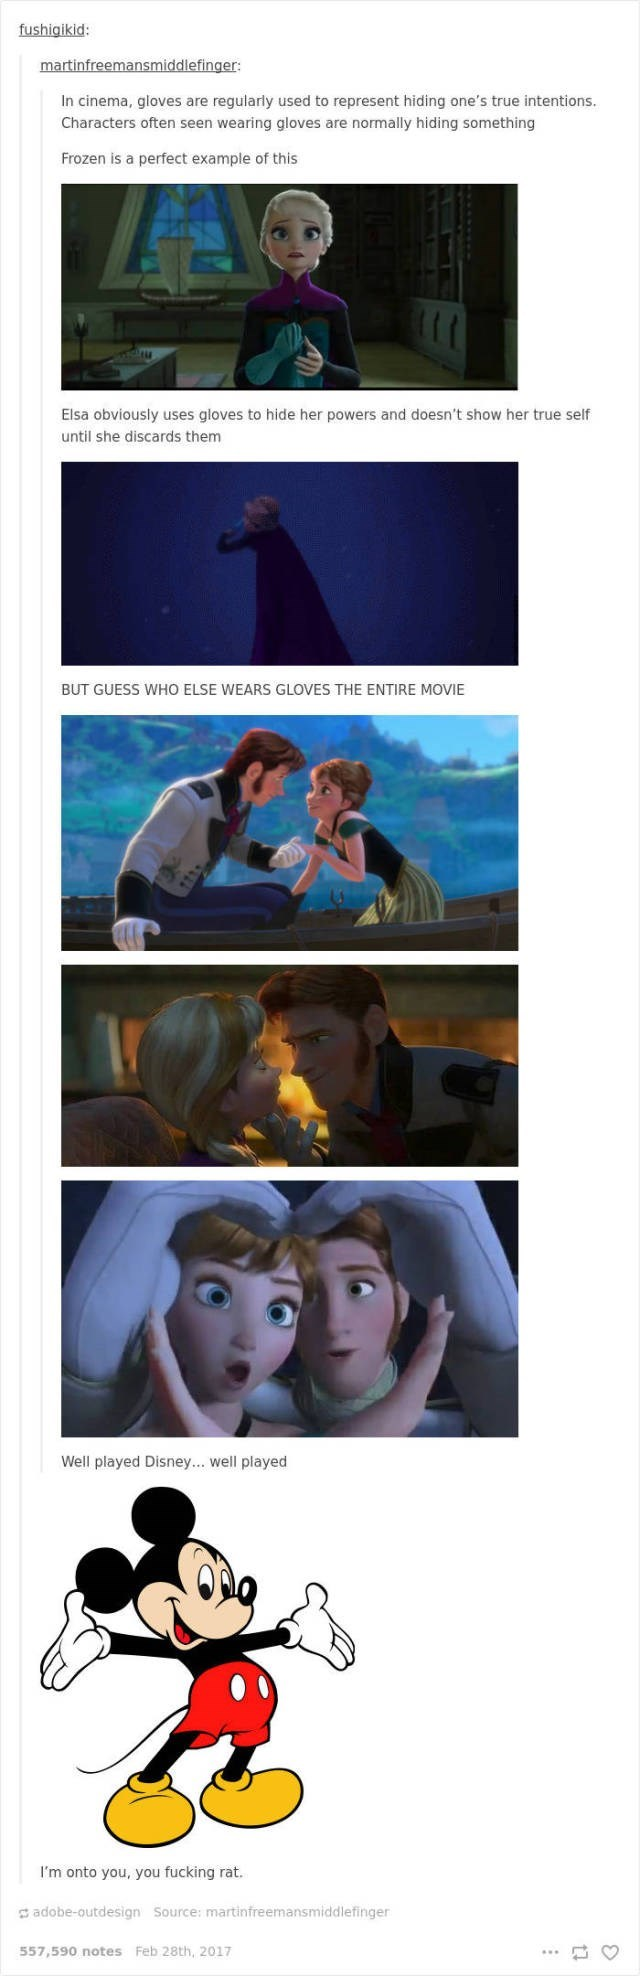 Photography - fushigikid: martinfreemansmiddlefinger: In cinema, gloves are regularly used to represent hiding one's true intentions. Characters often seen wearing gloves are normally hiding something Frozen is a perfect example of this Elsa obviously uses gloves to hide her powers and doesn't show her true self until she discards them BUT GUESS WHO ELSE WEARS GLOVES THE ENTIRE MOVIE Well played Disney... well played I'm onto you, you fucking rat. adobe-outdesign Source: martinfreemansmiddlefing